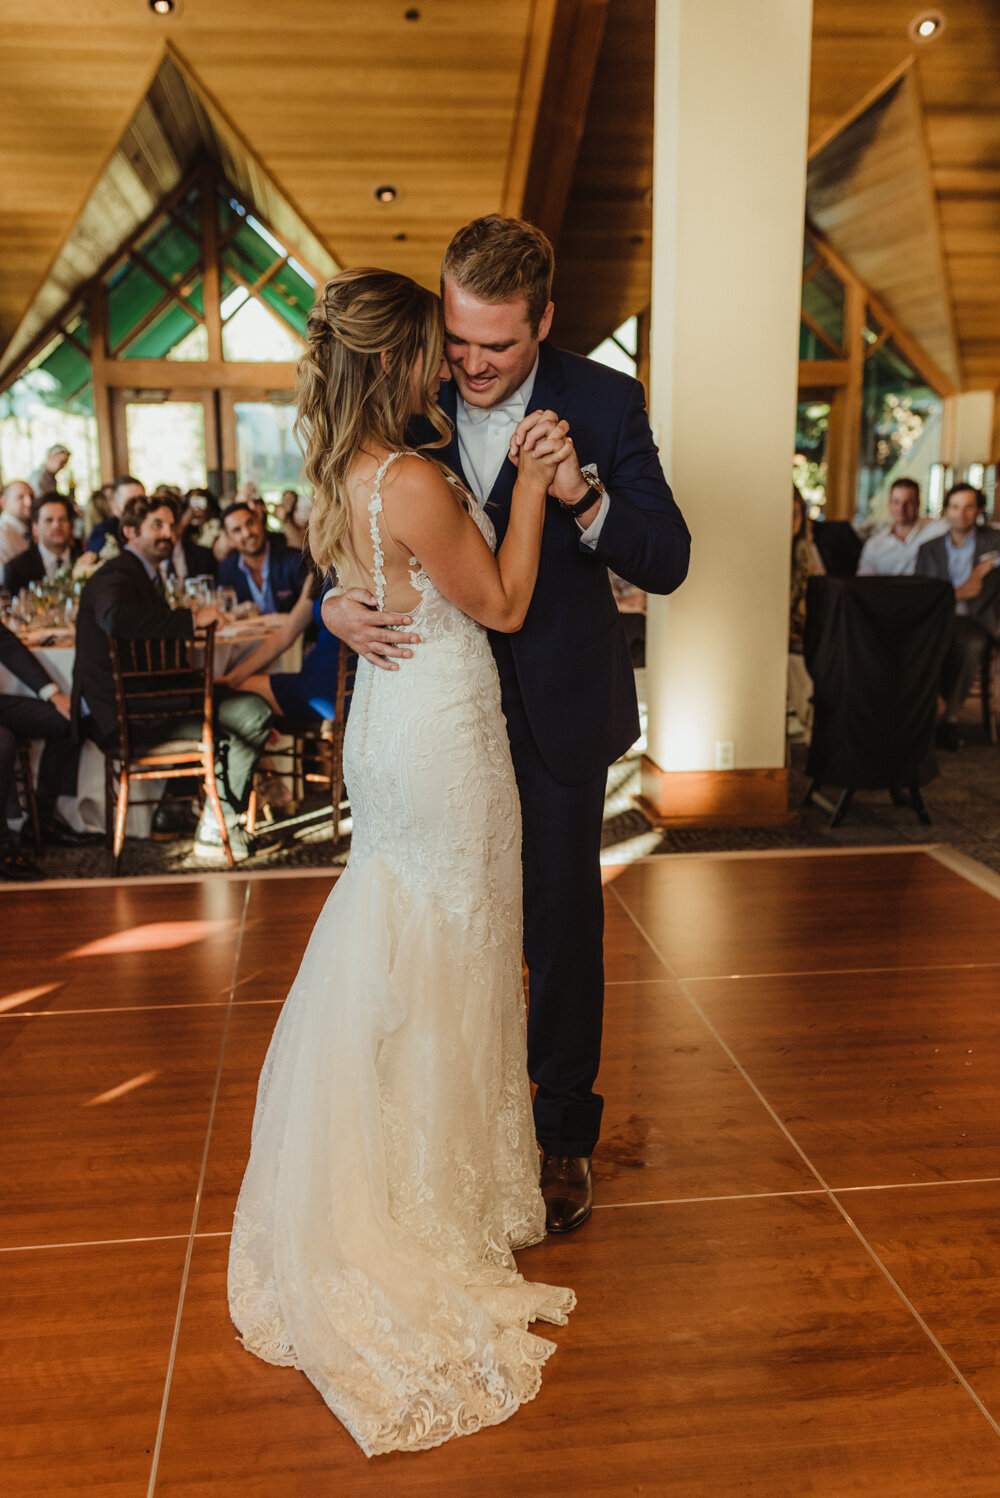 Edgewood Tahoe Wedding, couple dancing photo